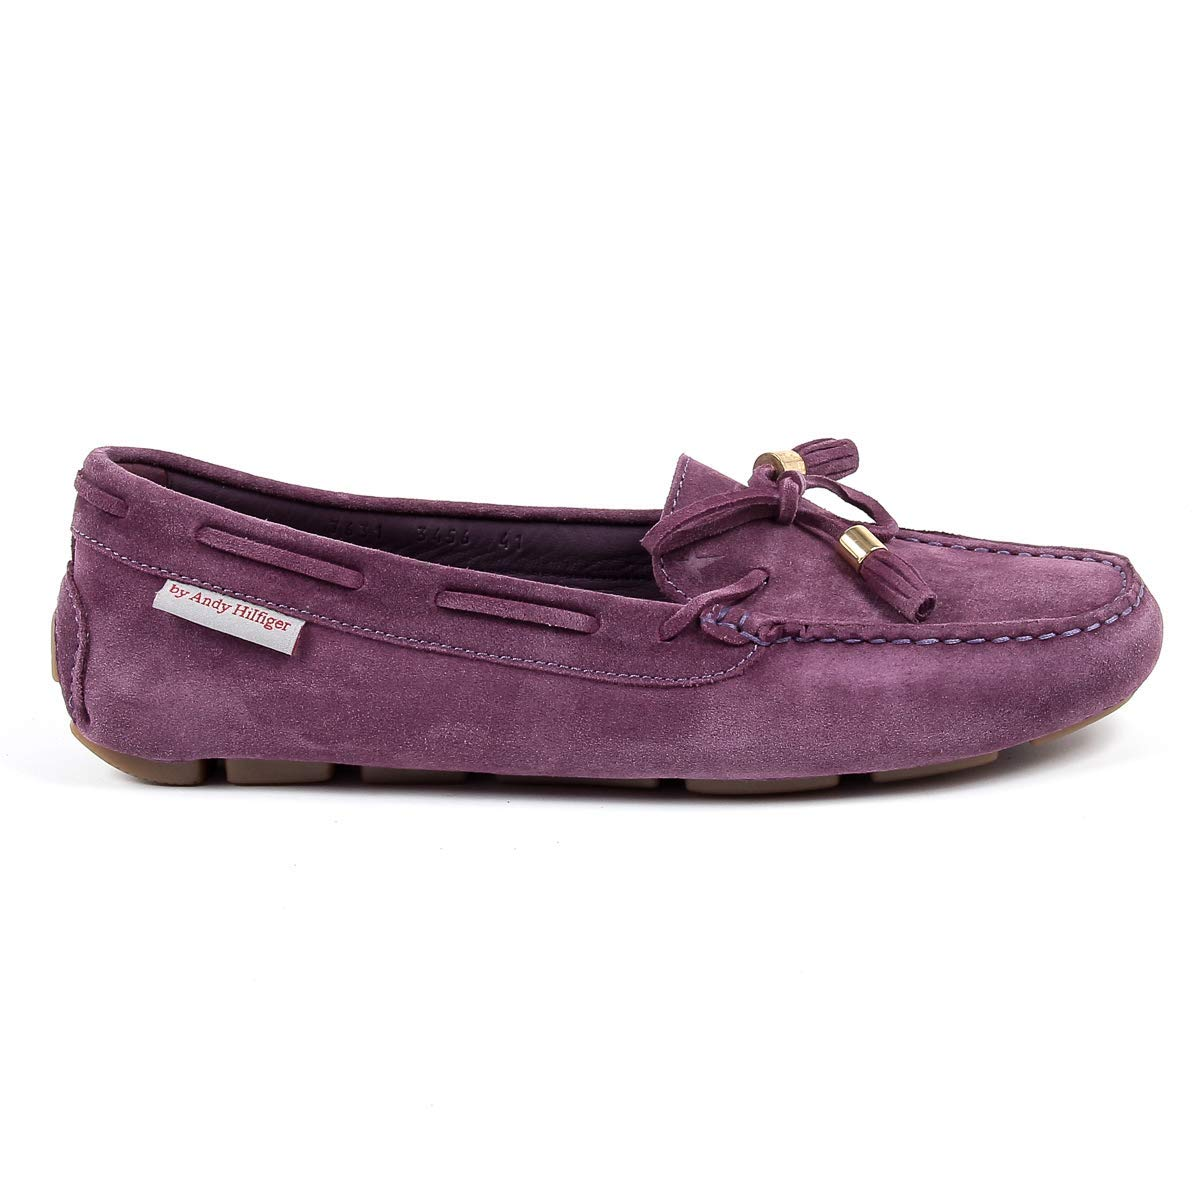 Andrew Charles By By By Andy Hilfiger Frauen Loafer Victory 15538f